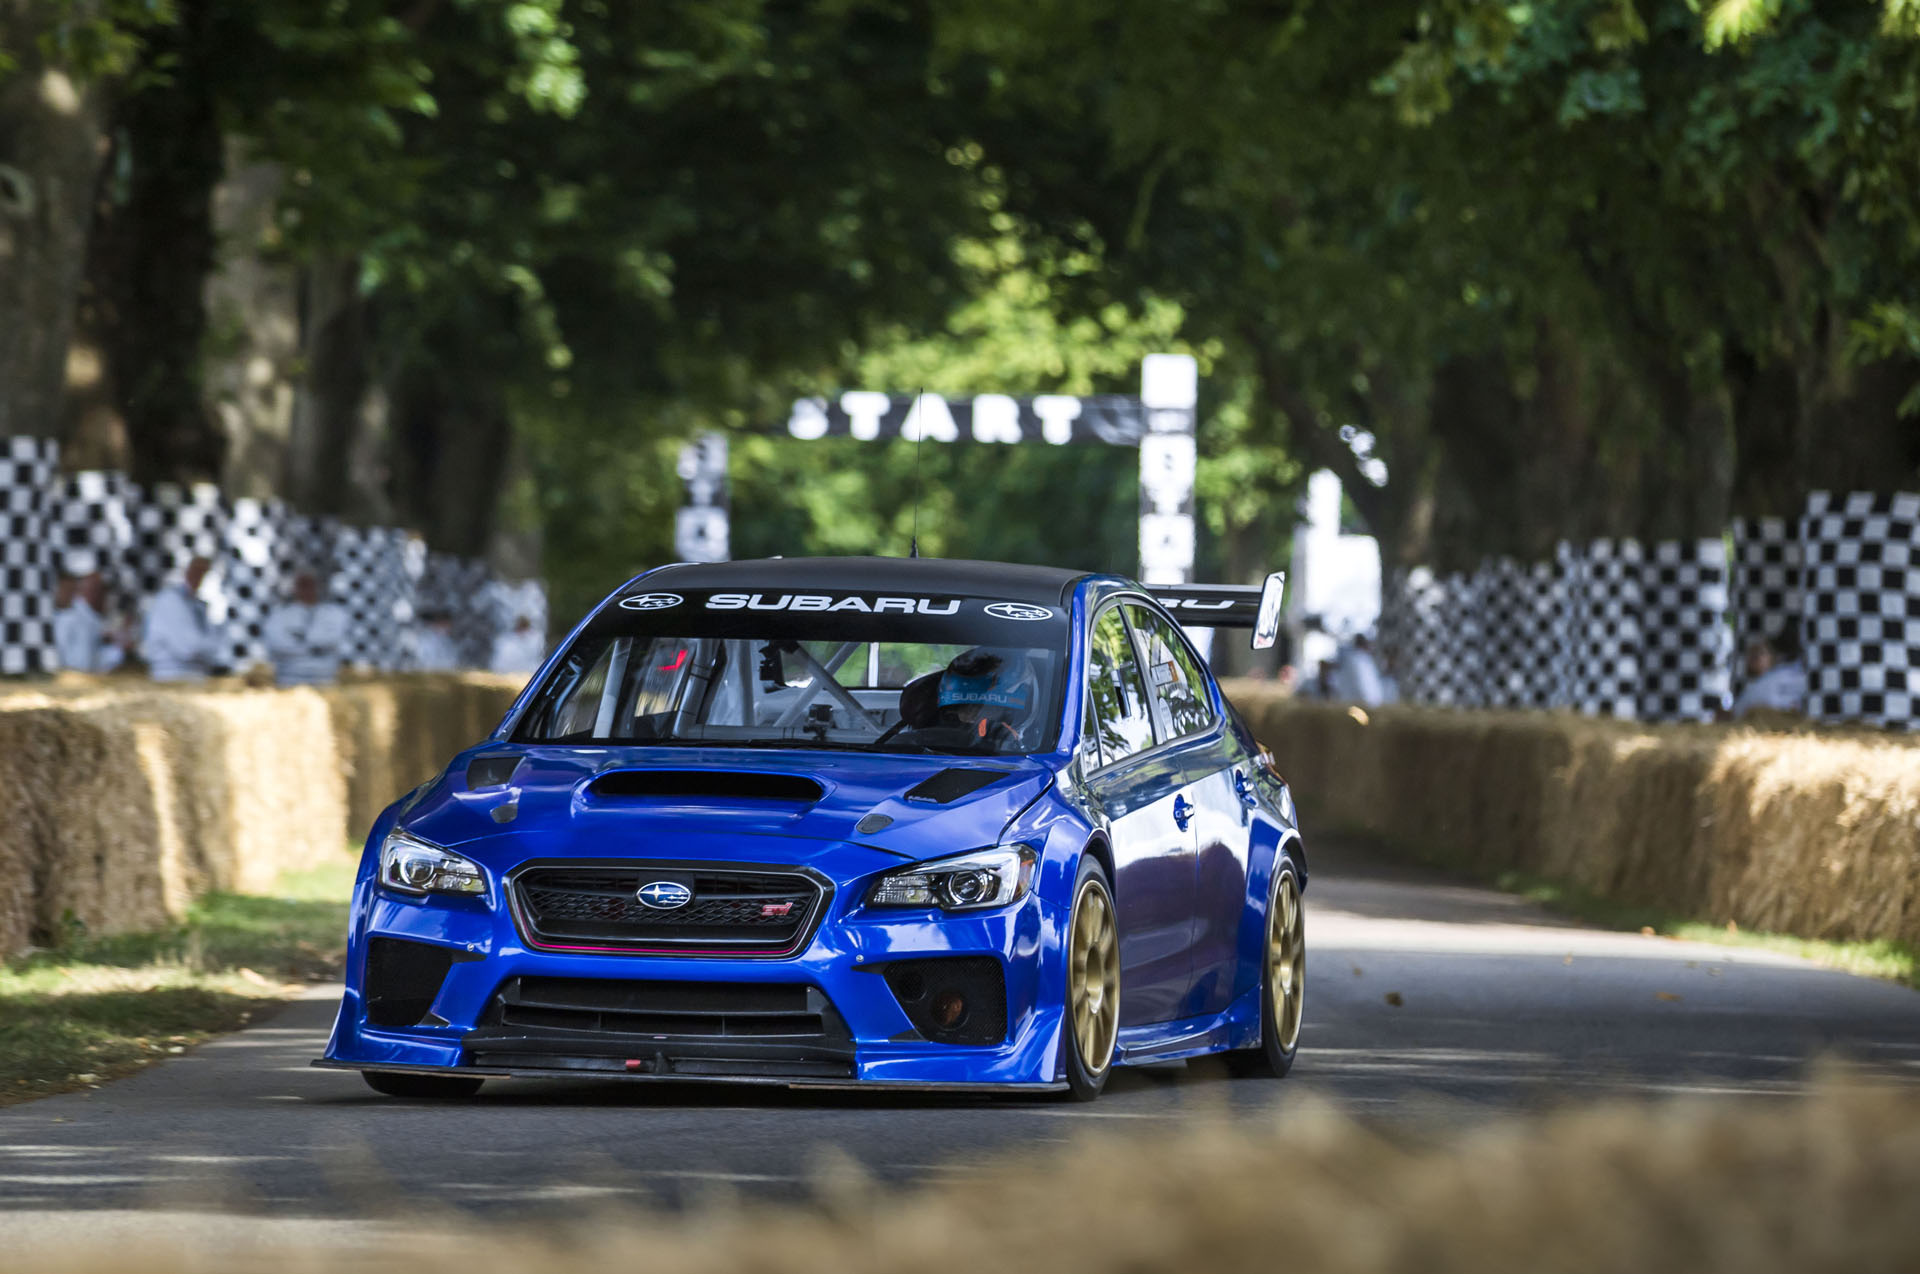 The Subaru WRX STi Type RA NBR is a Record Breaking Monster - Moto Networks